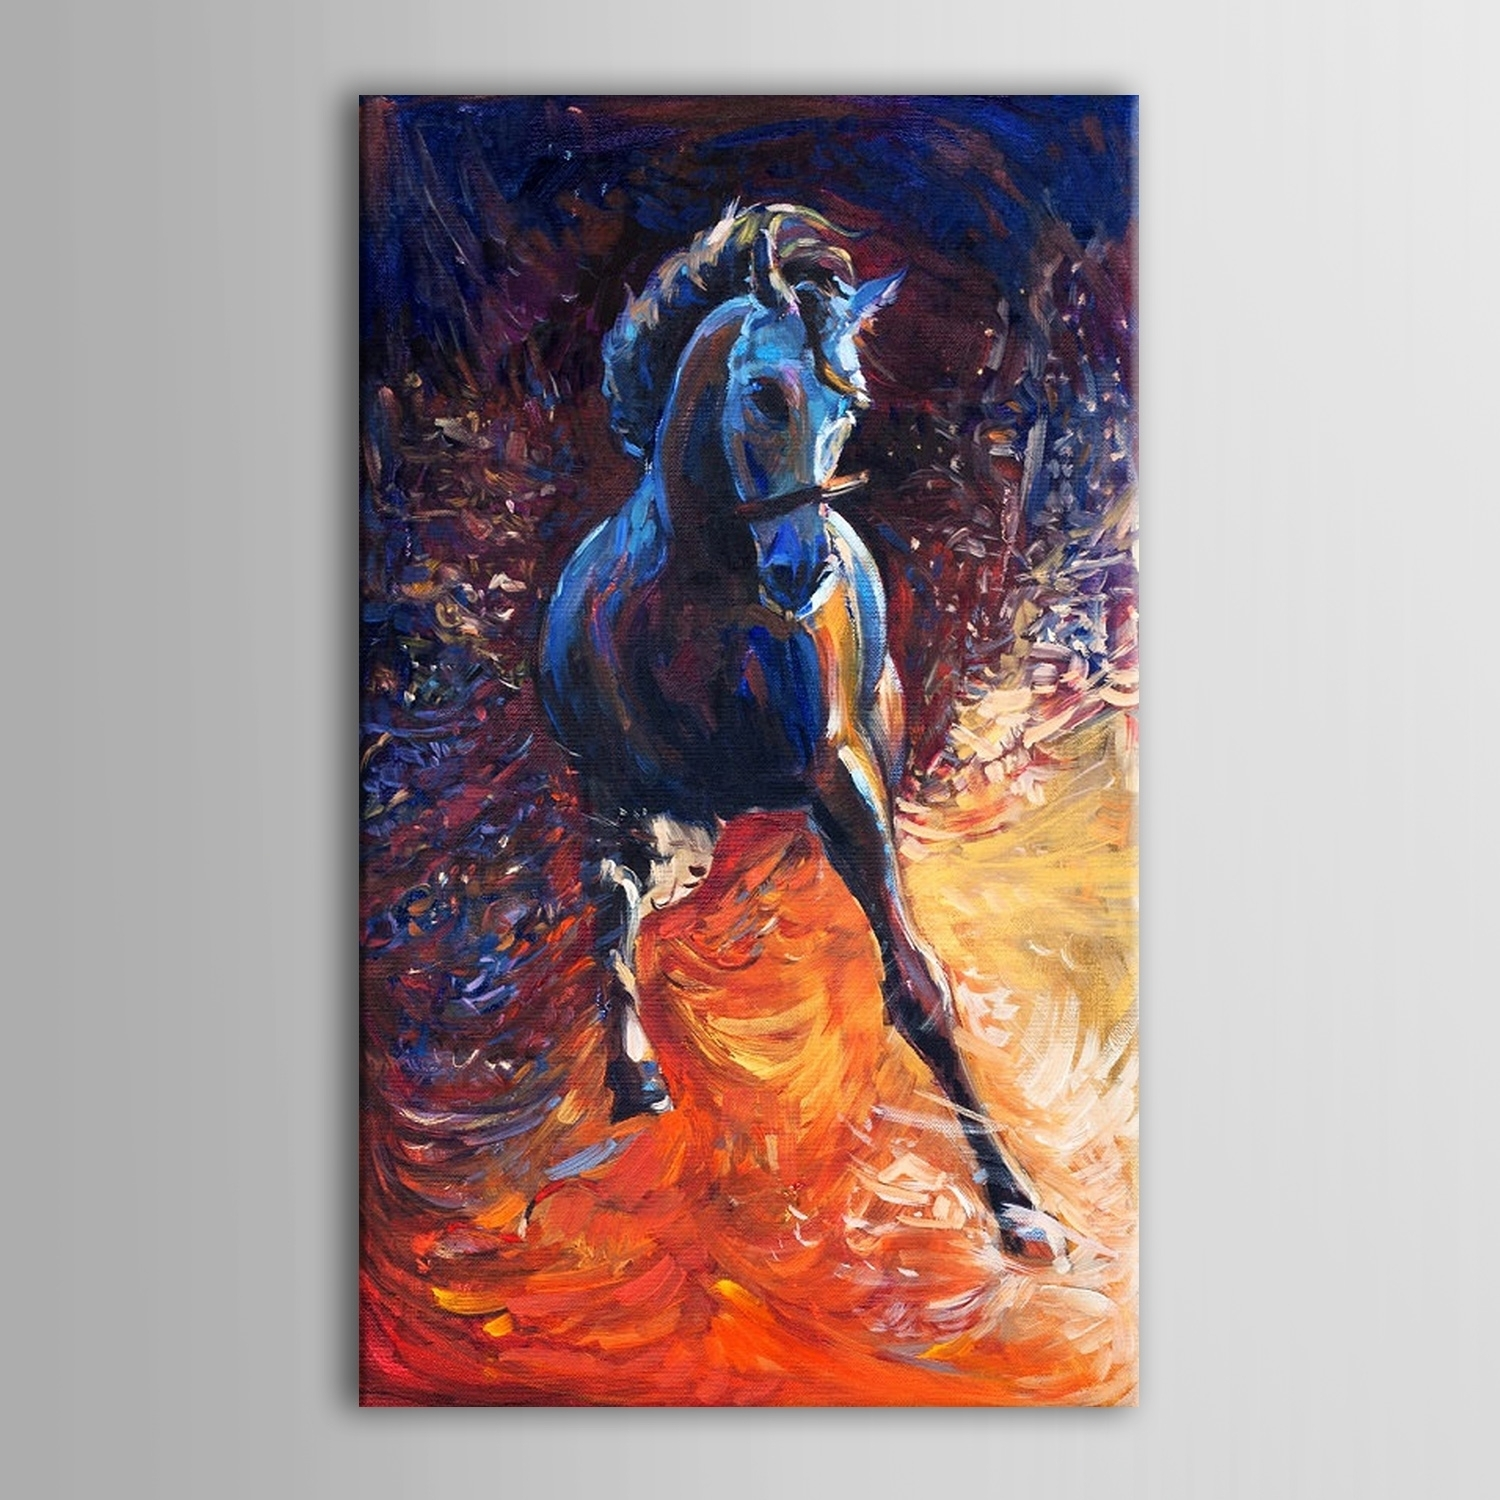 Hand Painted Beautiful Abstract Running Black Horse Oil Painting Within Most Current Abstract Horse Wall Art (View 13 of 20)